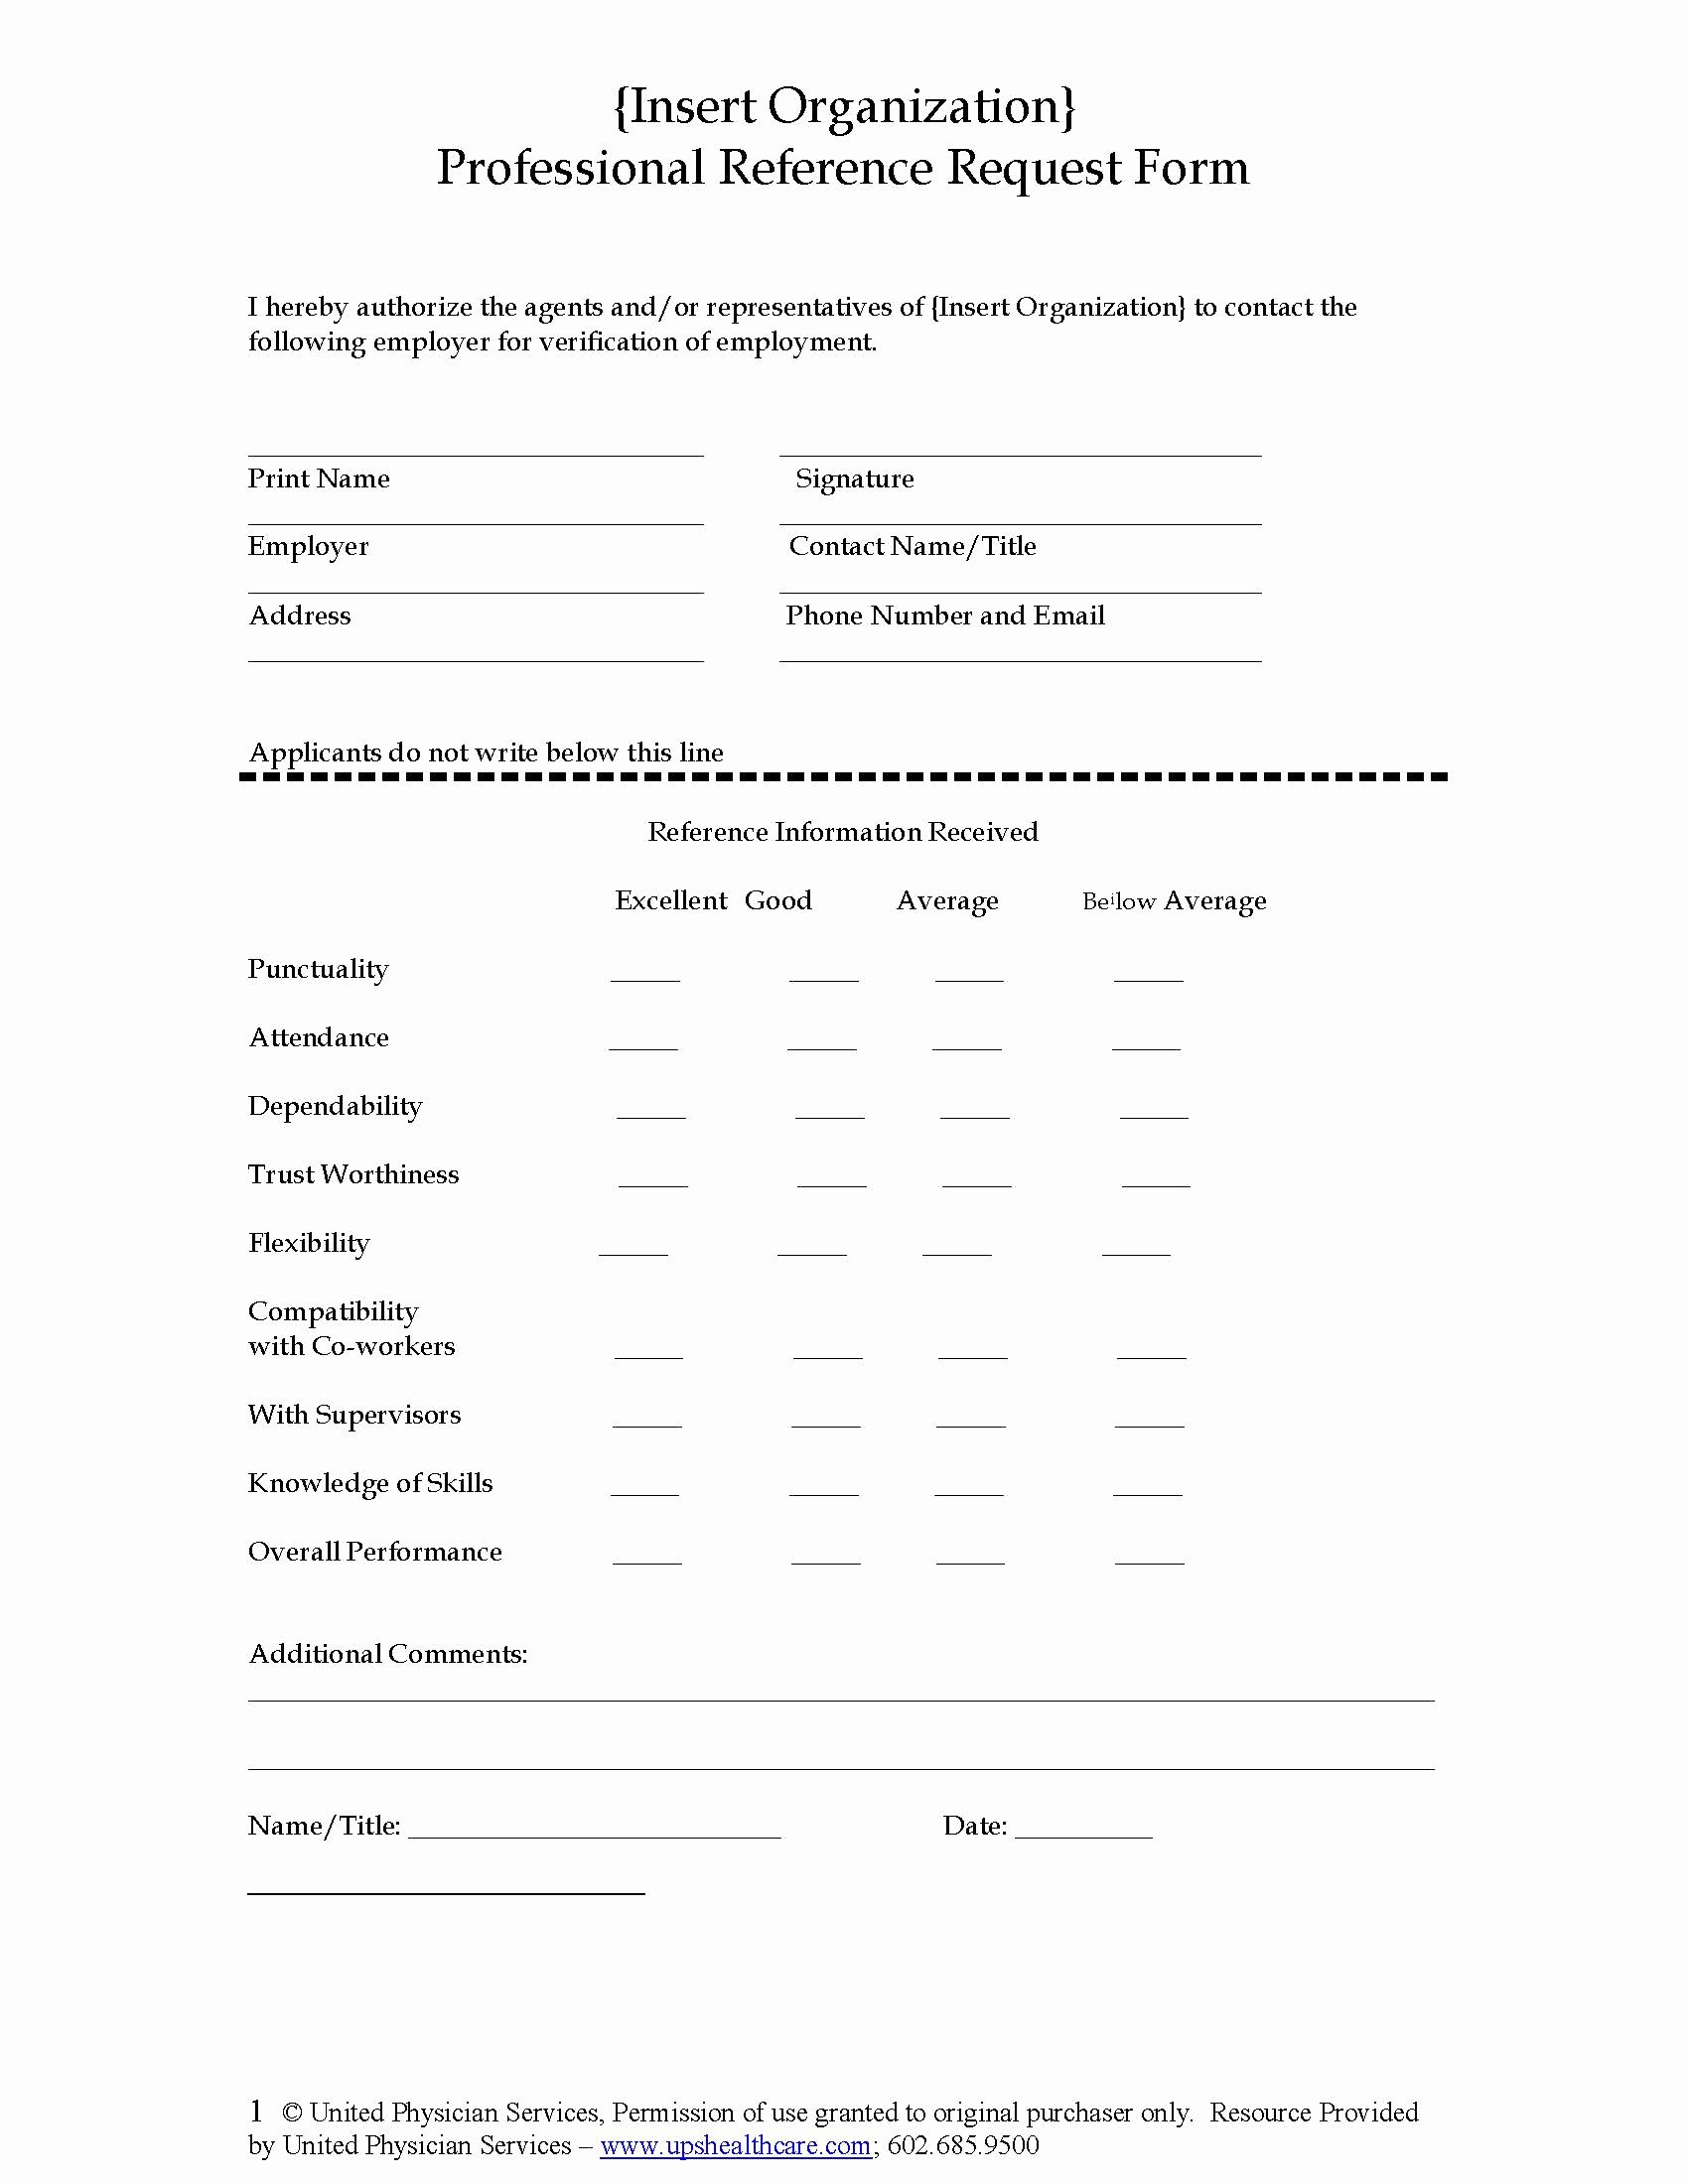 Employment Reference Request form Unique Professional Reference Request form